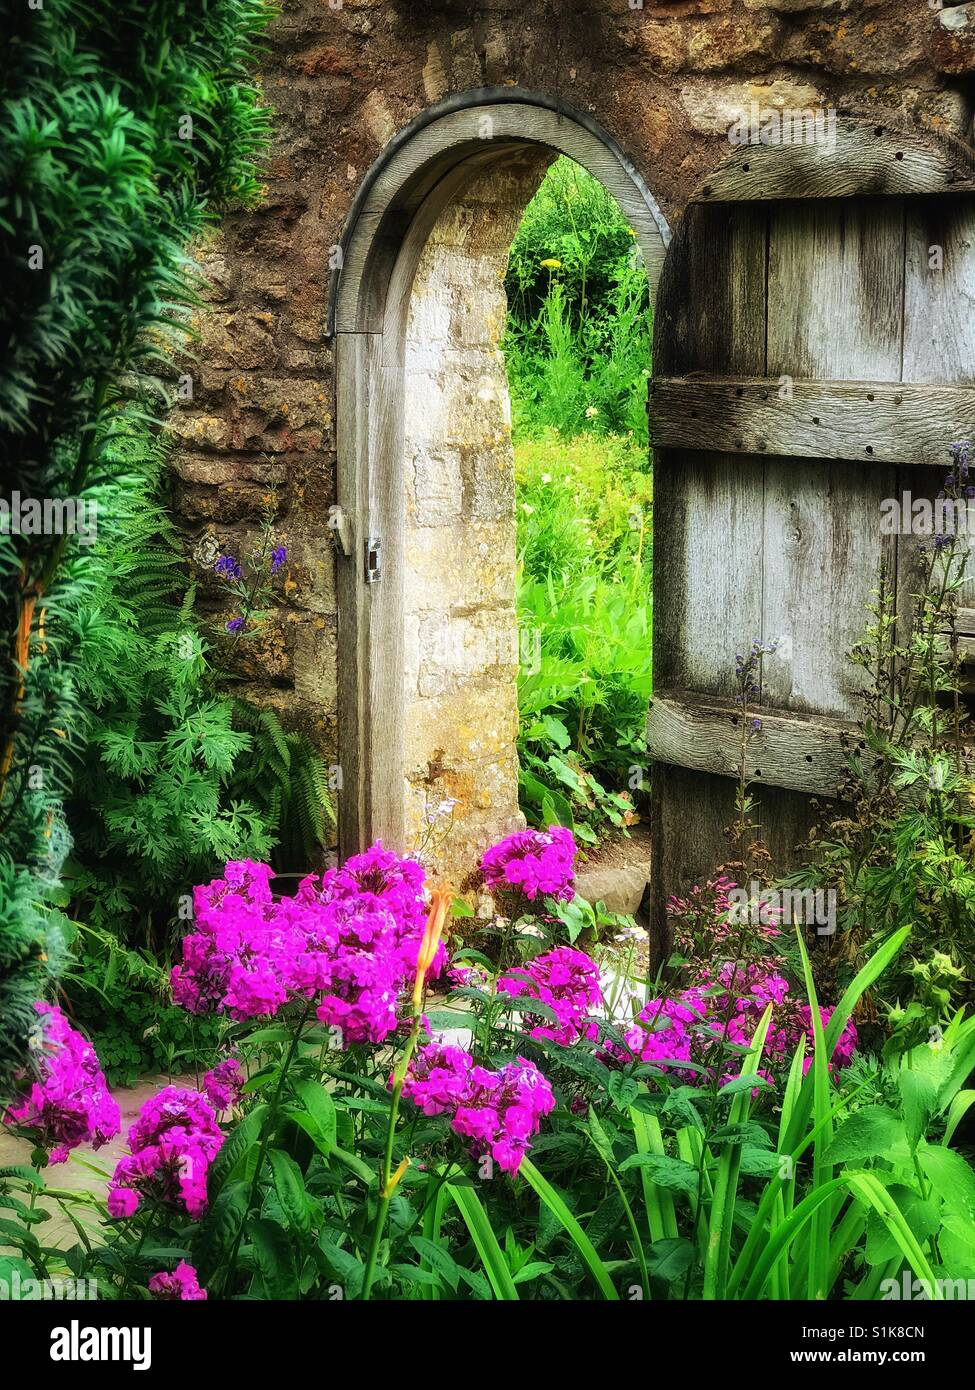 A View Of An English Country Garden Archway With Open Wooden Door. Itu0027s  Summer So The Flowers Are Colourful And In Full Bloom.